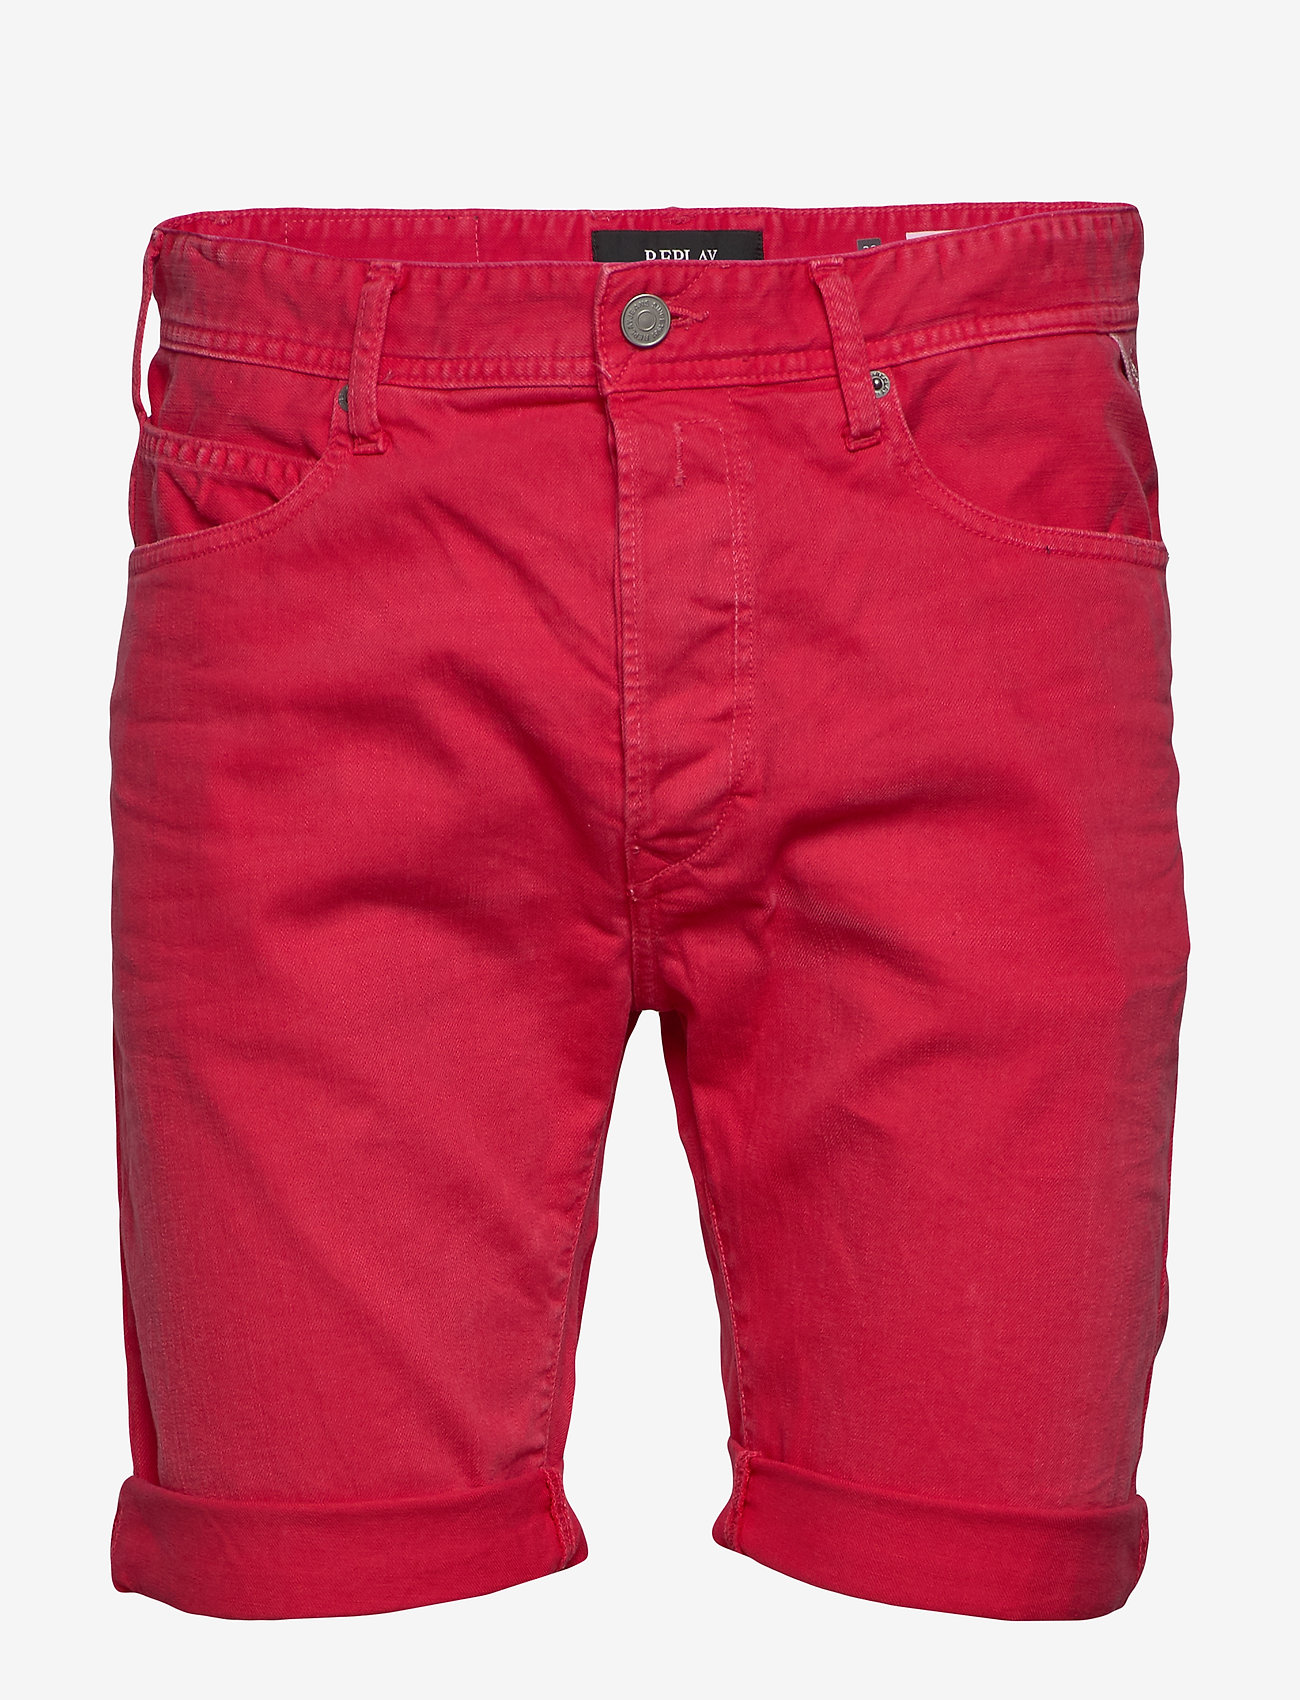 Replay - RBJ.901 SHORT - denim shorts - deep red - 0